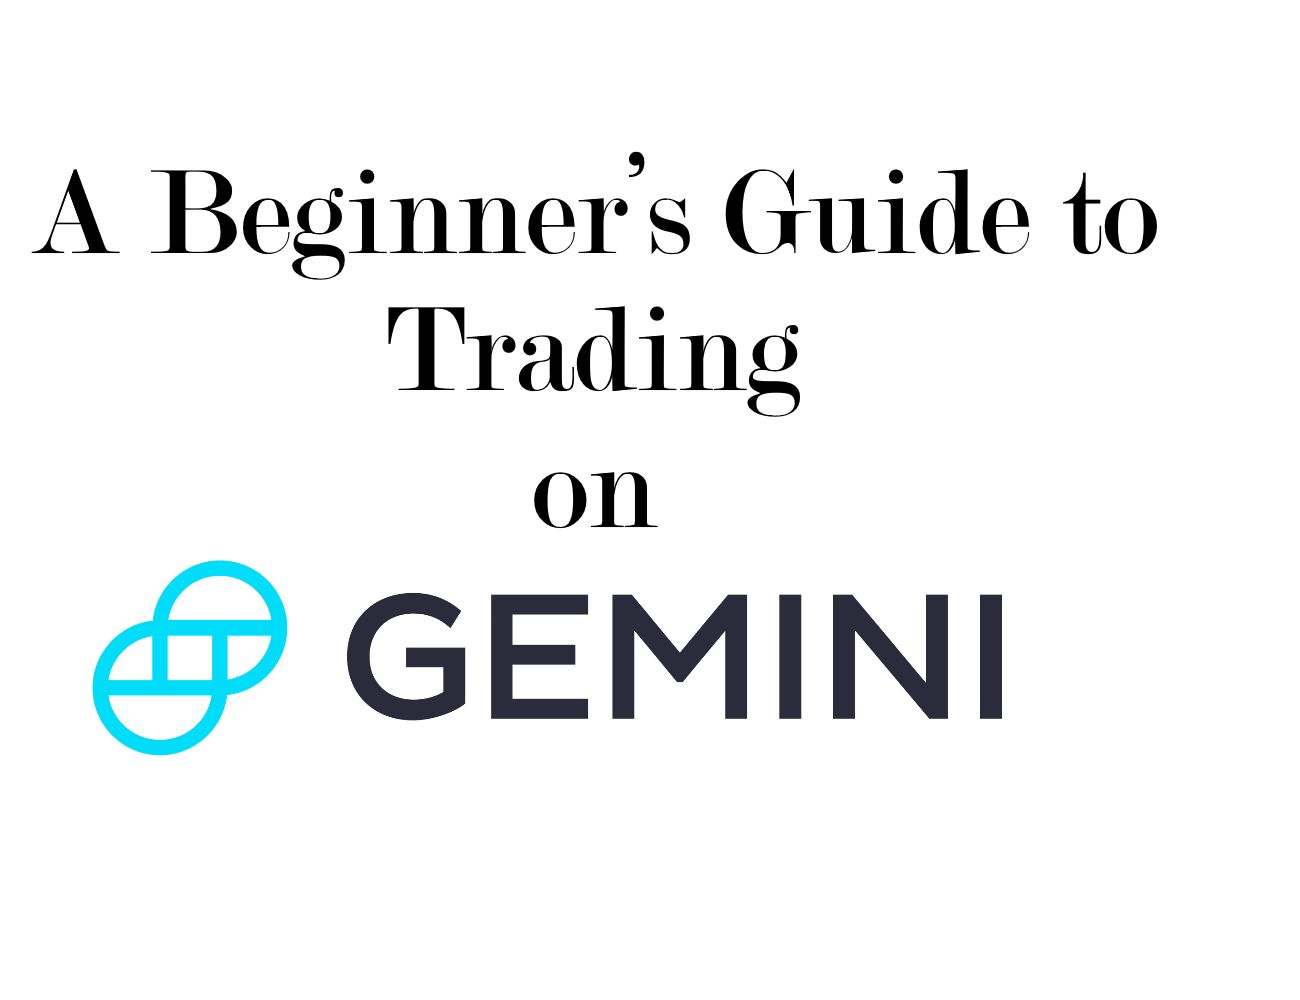 /a-beginners-guide-to-trading-on-gemini-2c76eda7d58 feature image